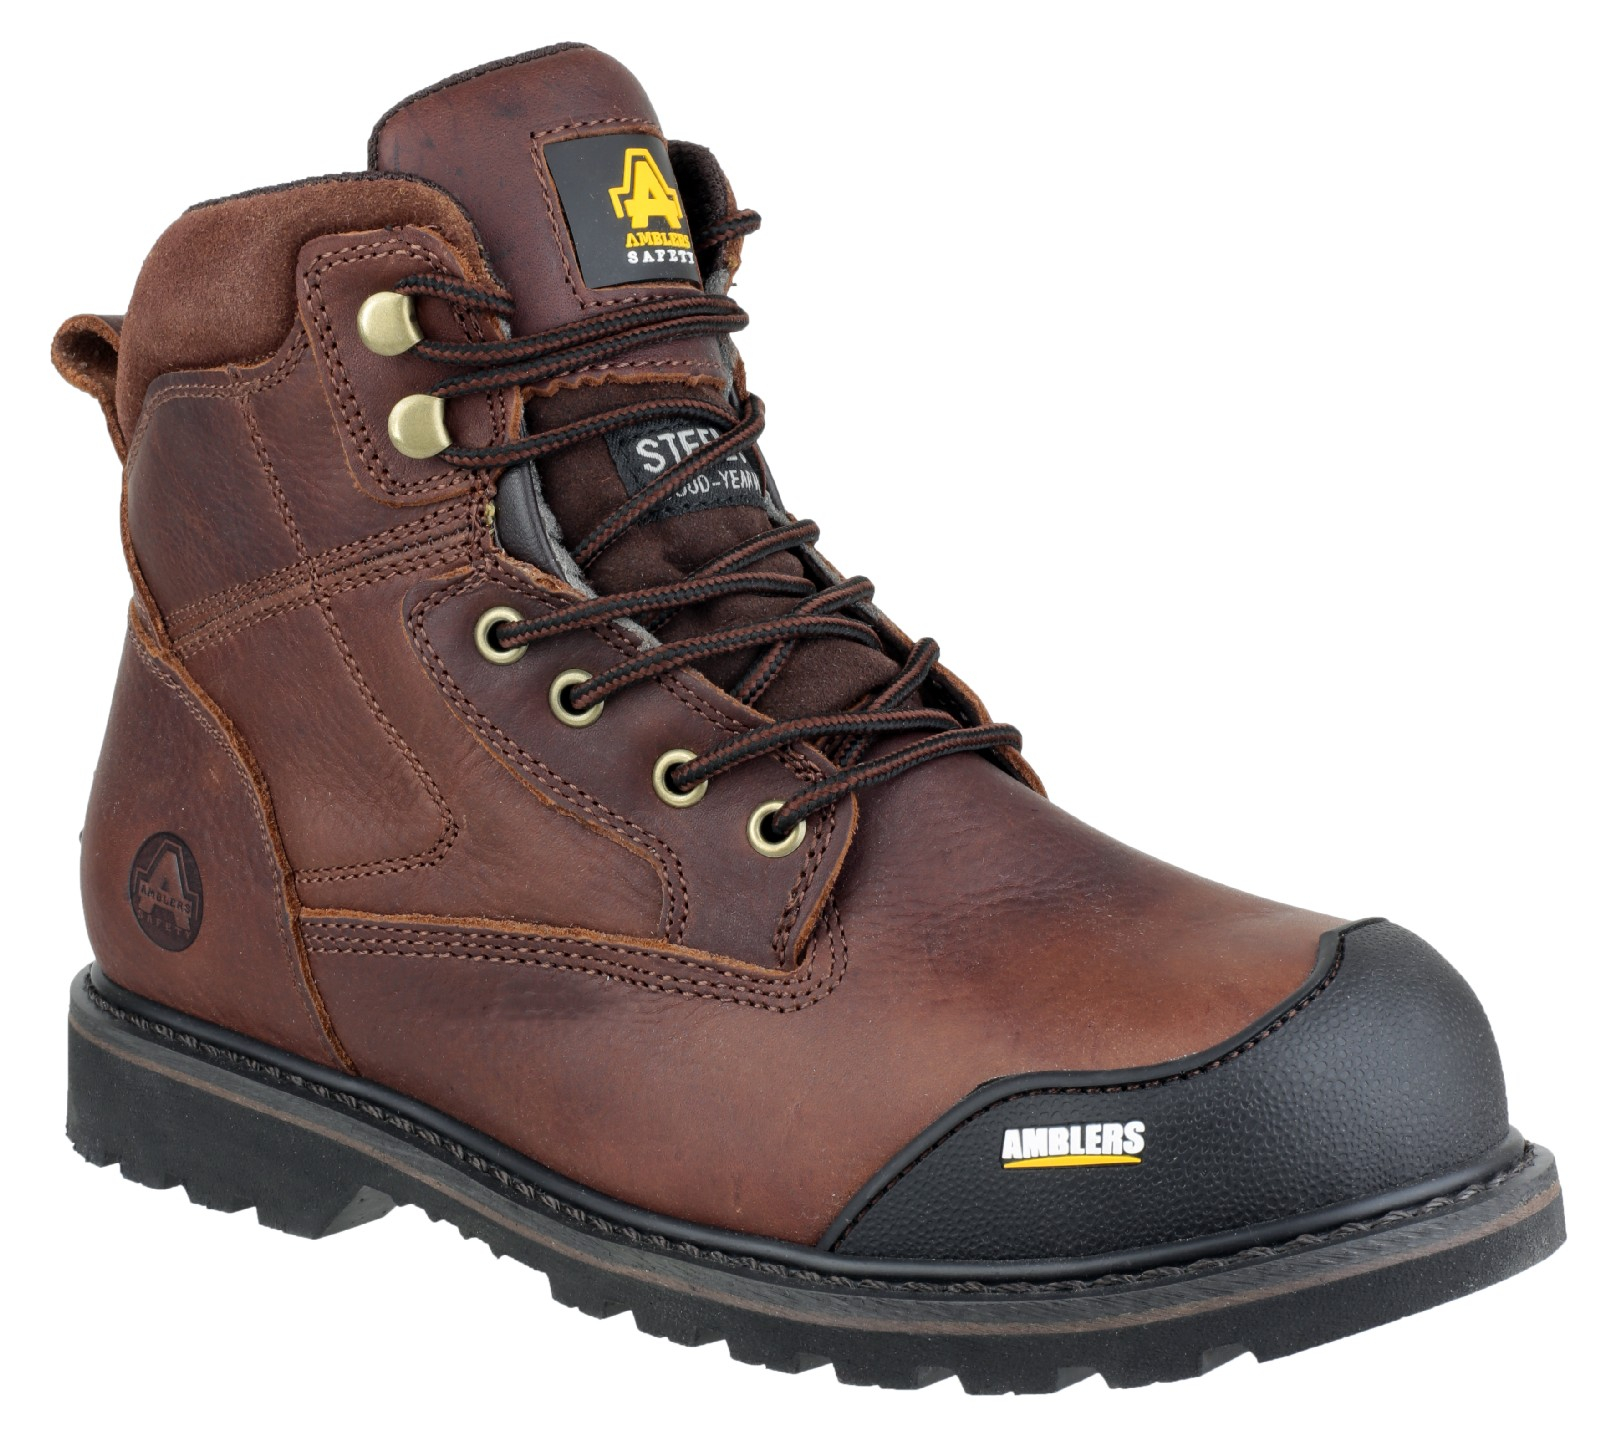 FS167 Safety Boots